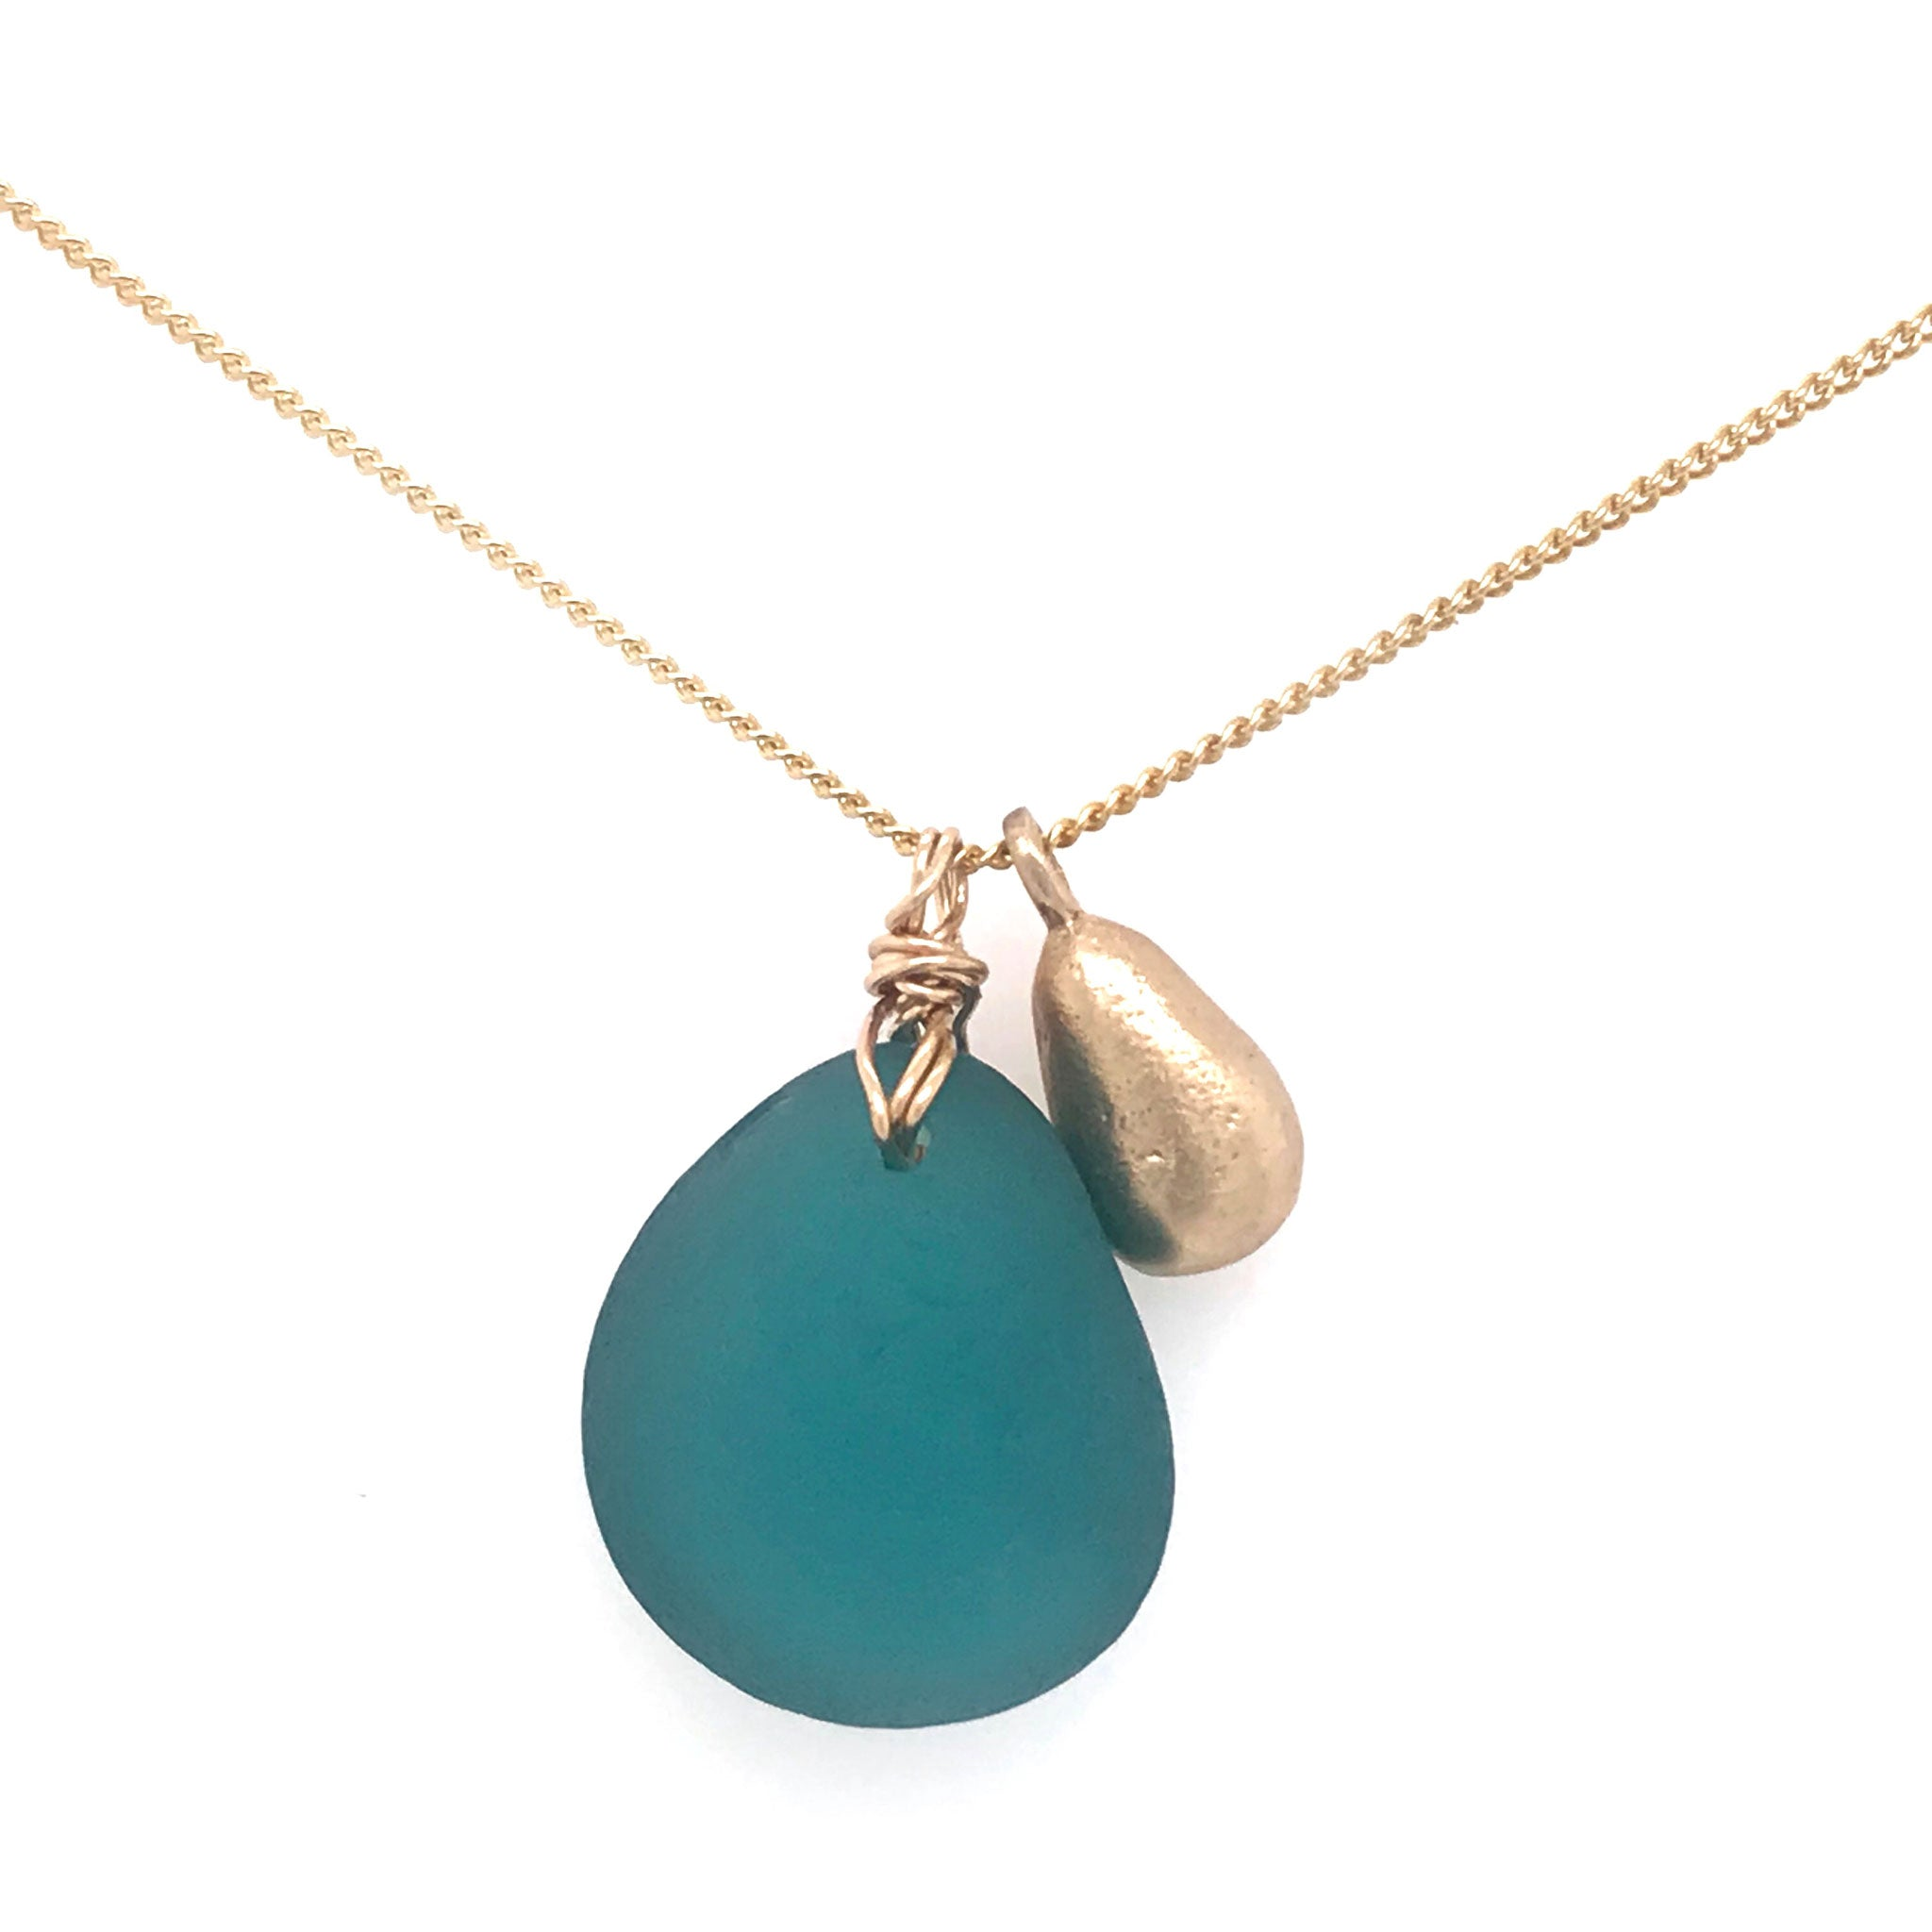 teal seaglass necklace on gold chain with solid 14k gold teardrop charm Kriket Broadhurst handmade jewellery